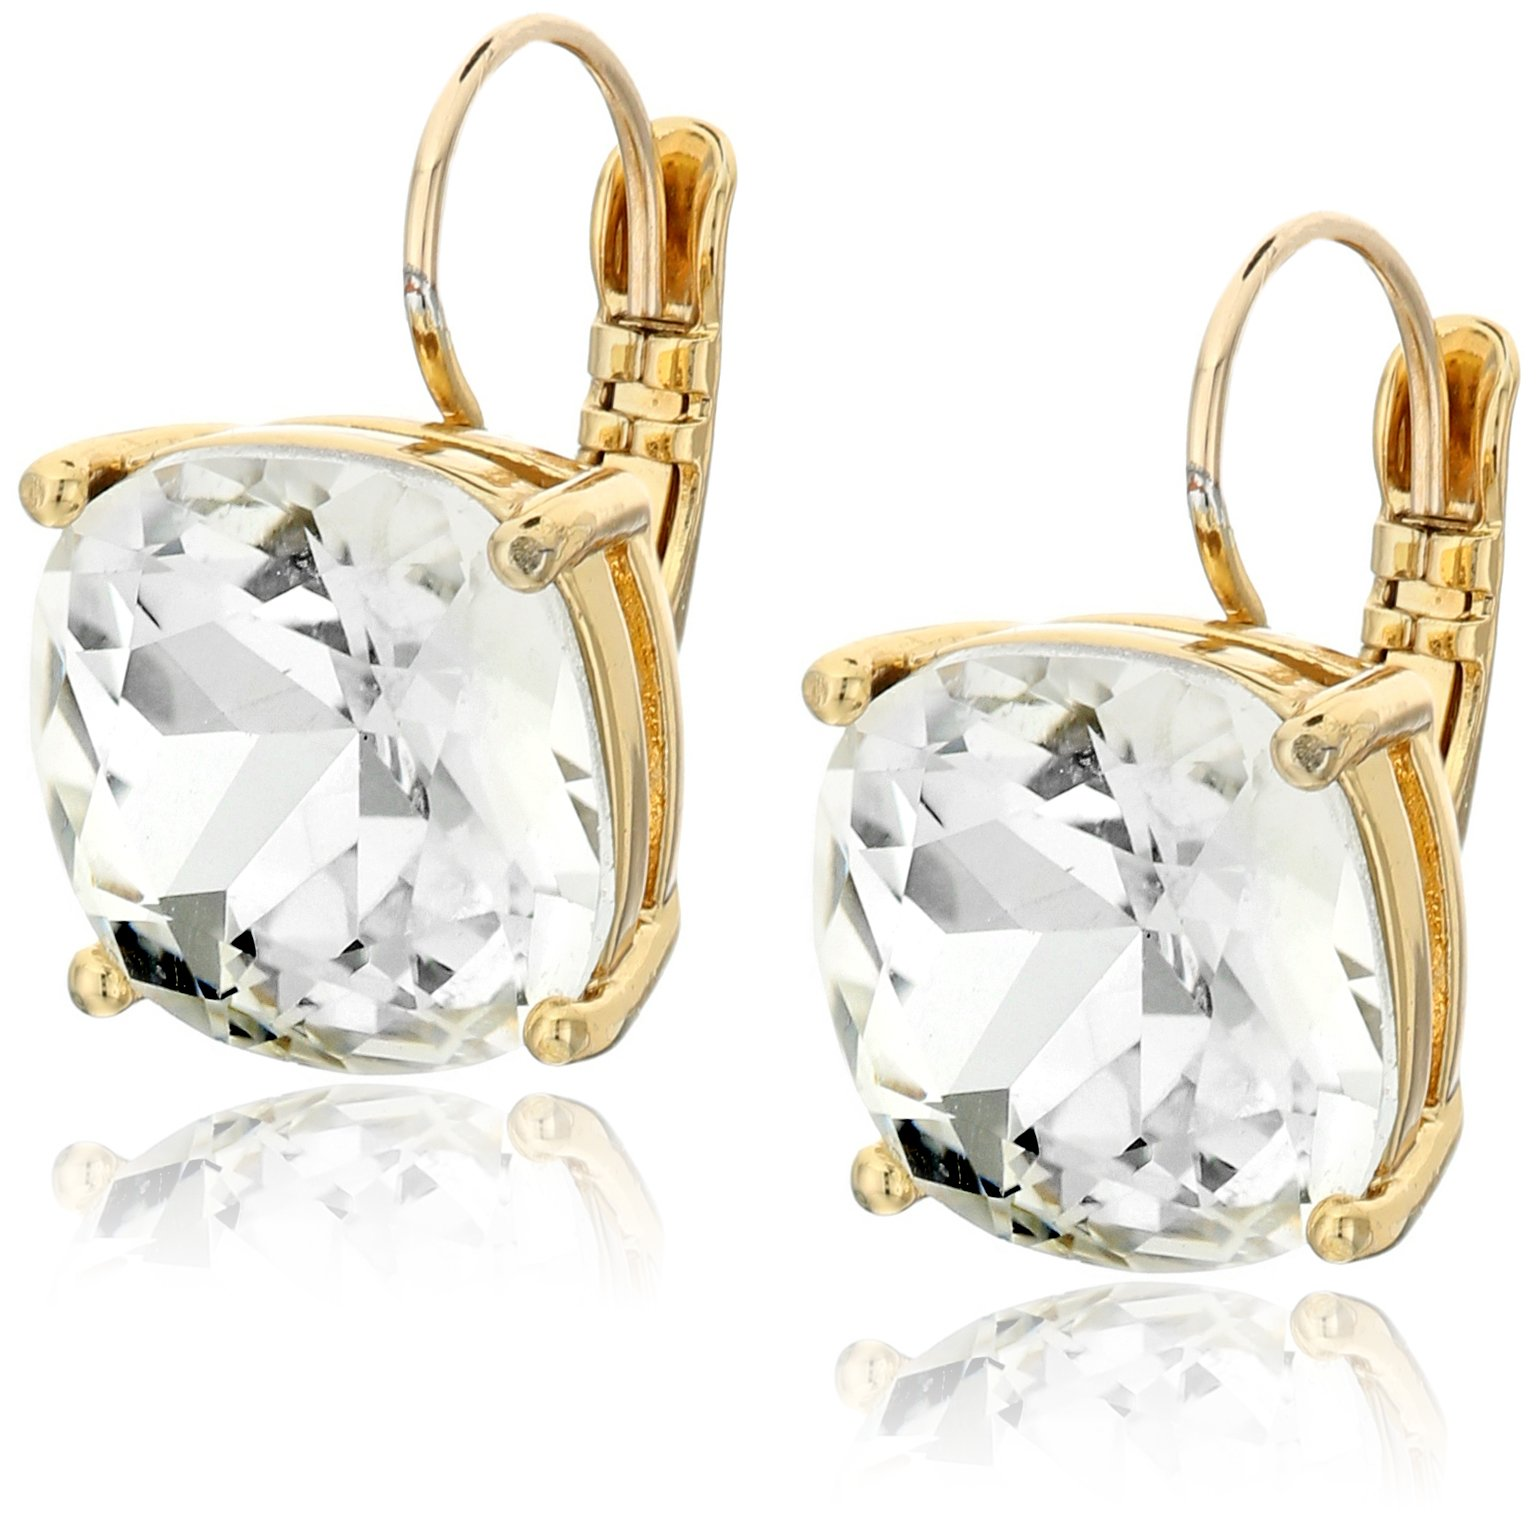 kate spade new york Kate Spade Earrings Small Square Clear Leverback Earrings